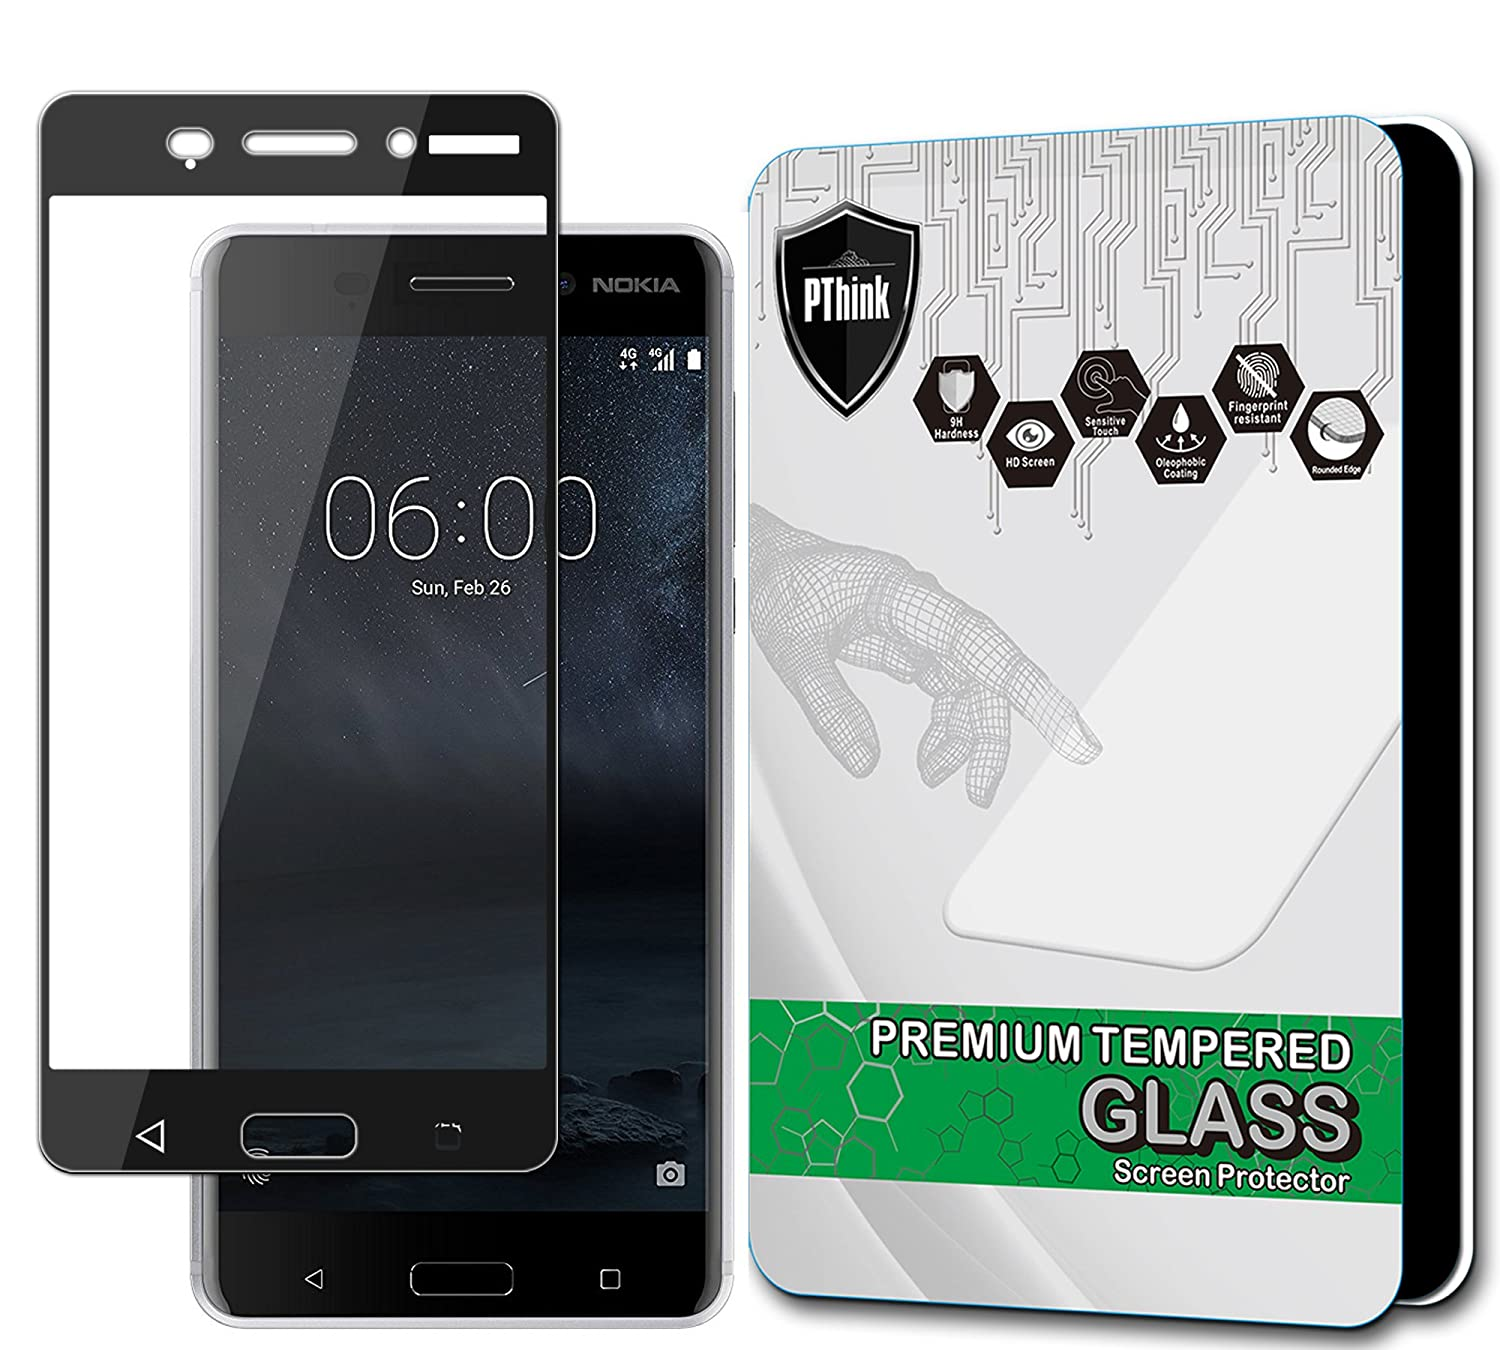 PThink [Full Screen Coverage] Tempered Glass Screen Protector for Nokia 6 Black Amazon Cell Phones & Accessories